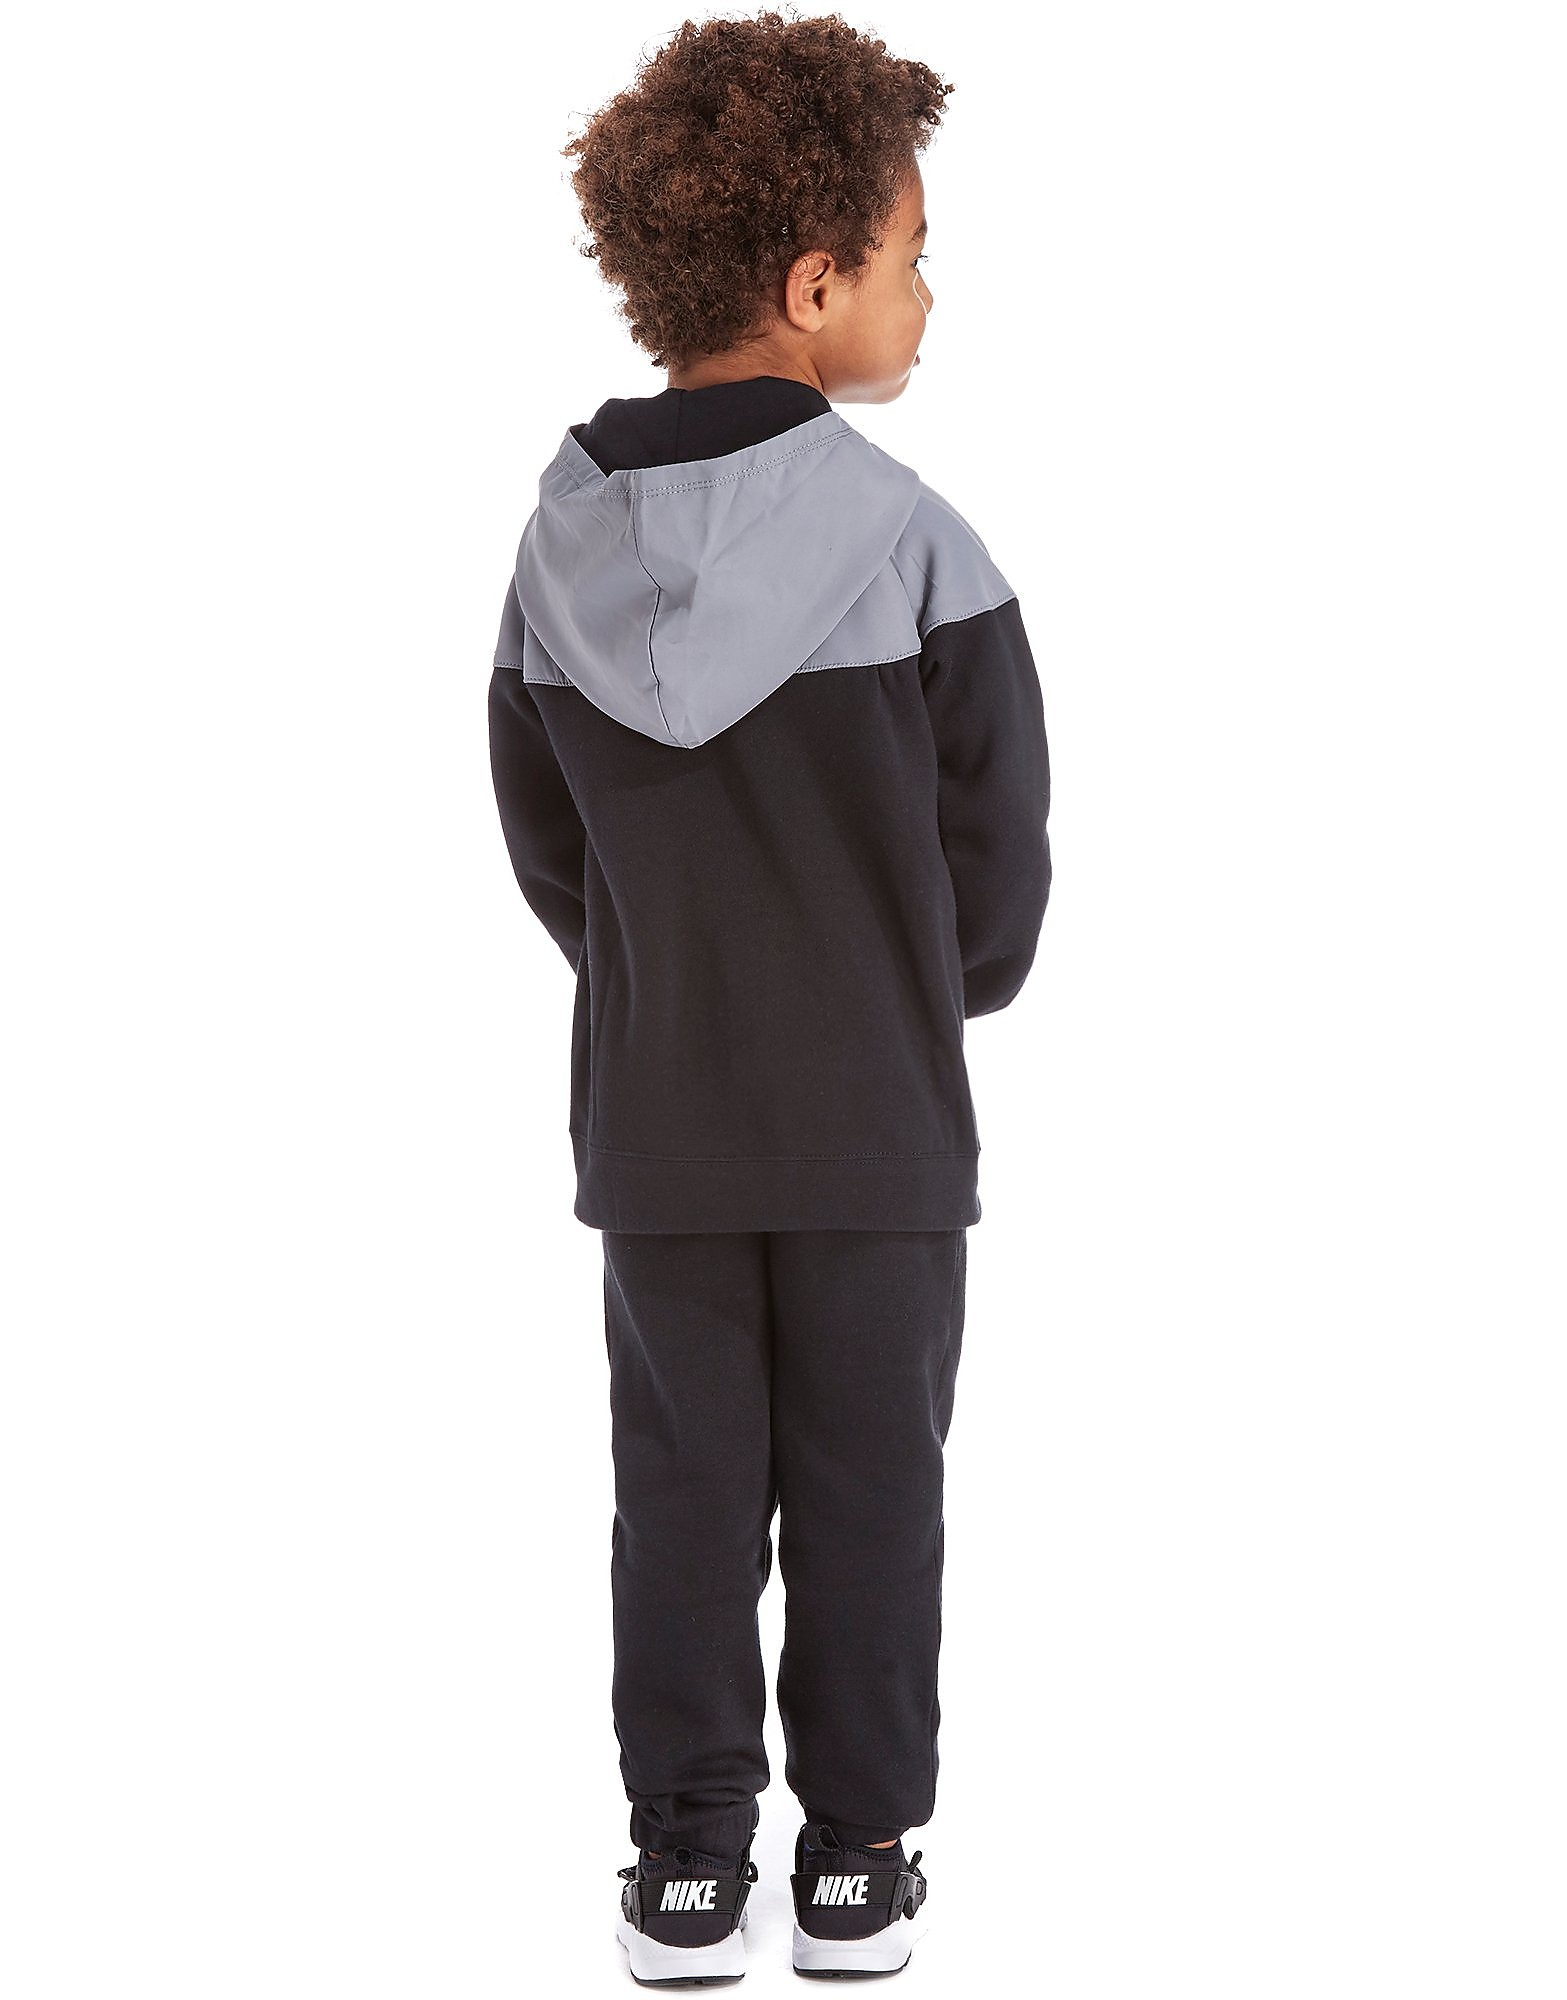 Nike Hybrid Full Zip Tracksuit Children